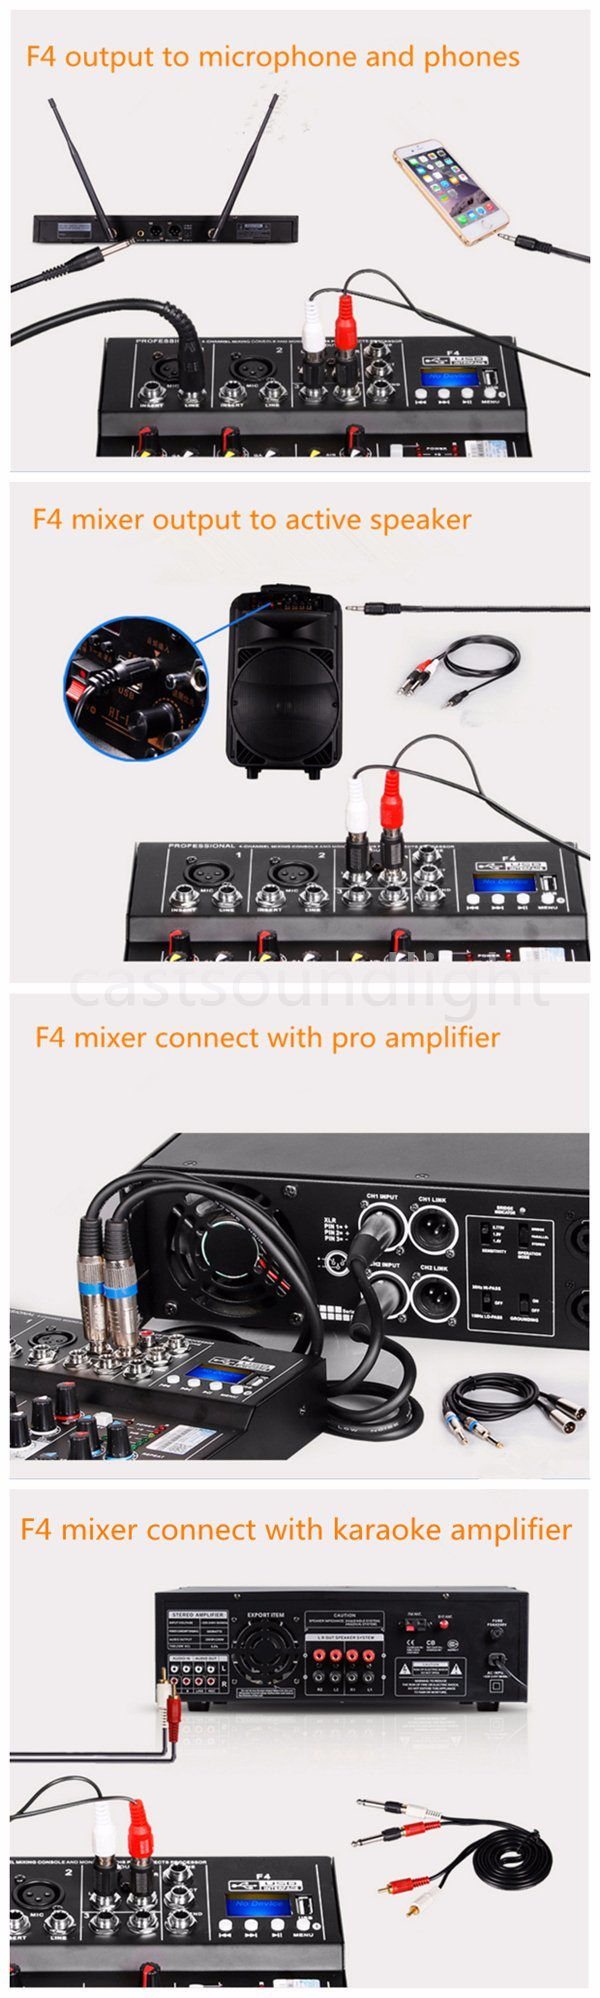 Mini Portable 4 Channel Audio Dj Mixer With Usb Bluetooth Mp3 5 1arena And Stage 2convention Centers 3medium Or Large Ballrooms 4conference Rooms 5theaters Music 6club Church 7concert Group